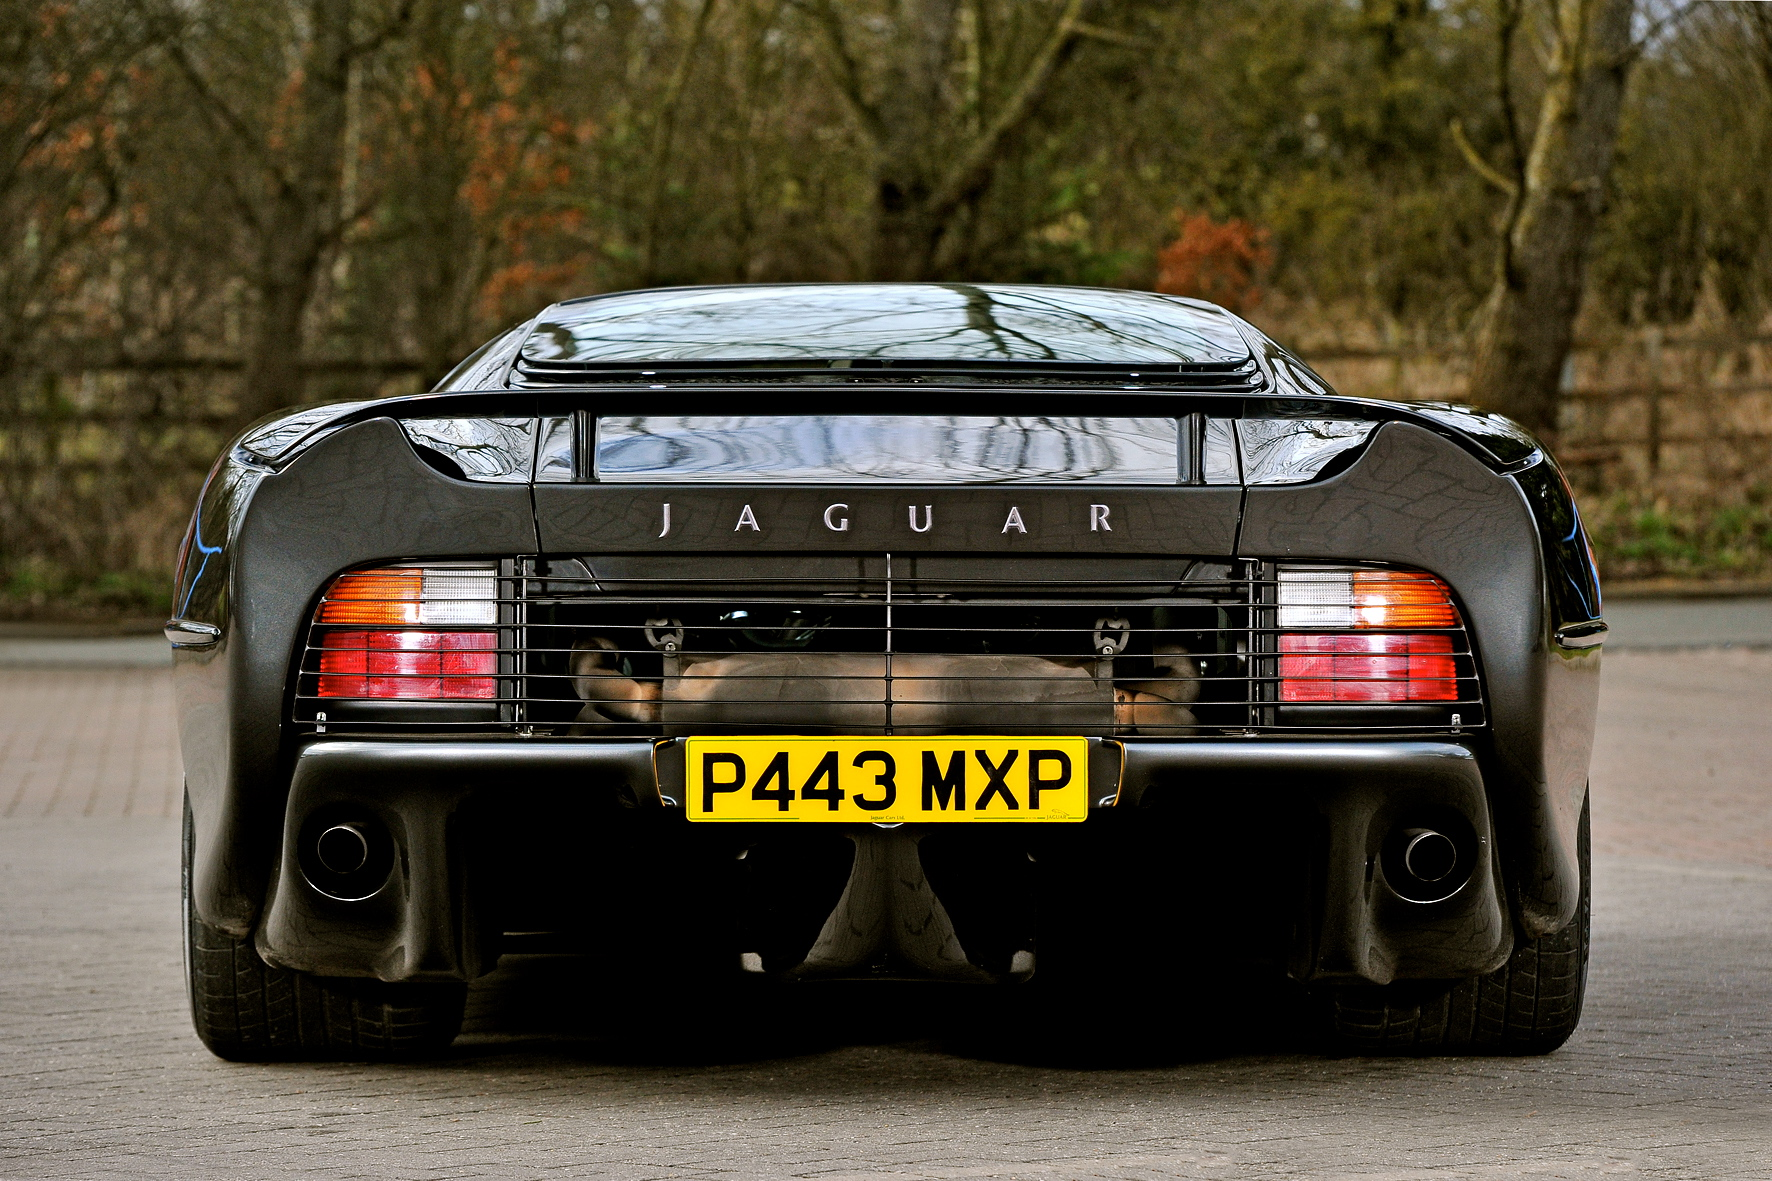 The Jaguar XJ220 - the king of the re-used car part!